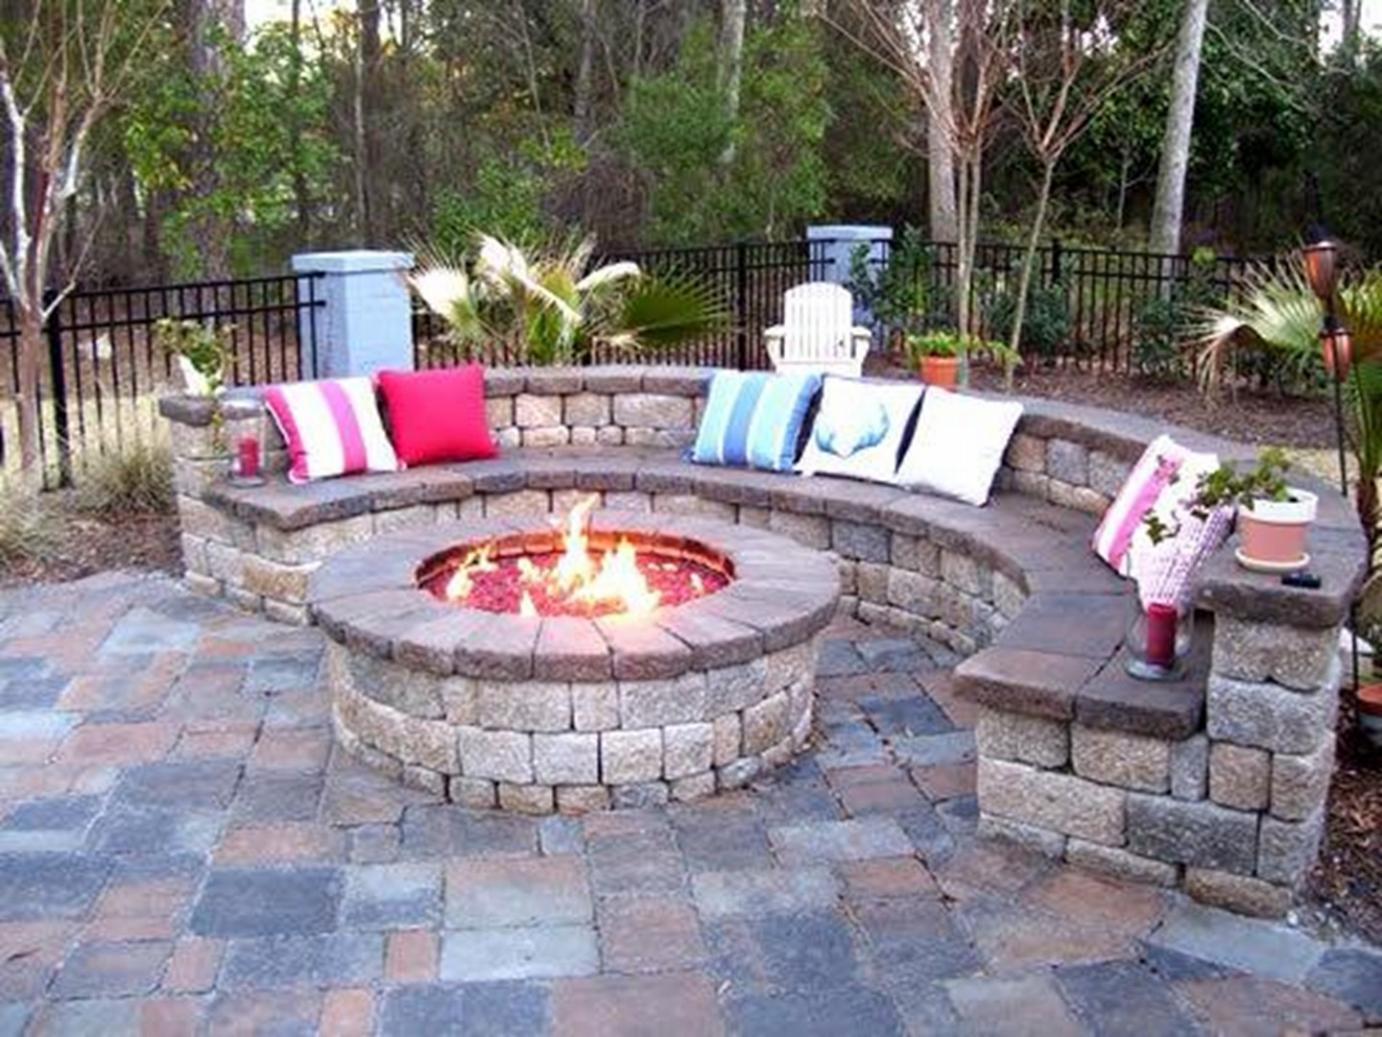 Backyard fire pit landscaping ideas - large and beautiful photos ...